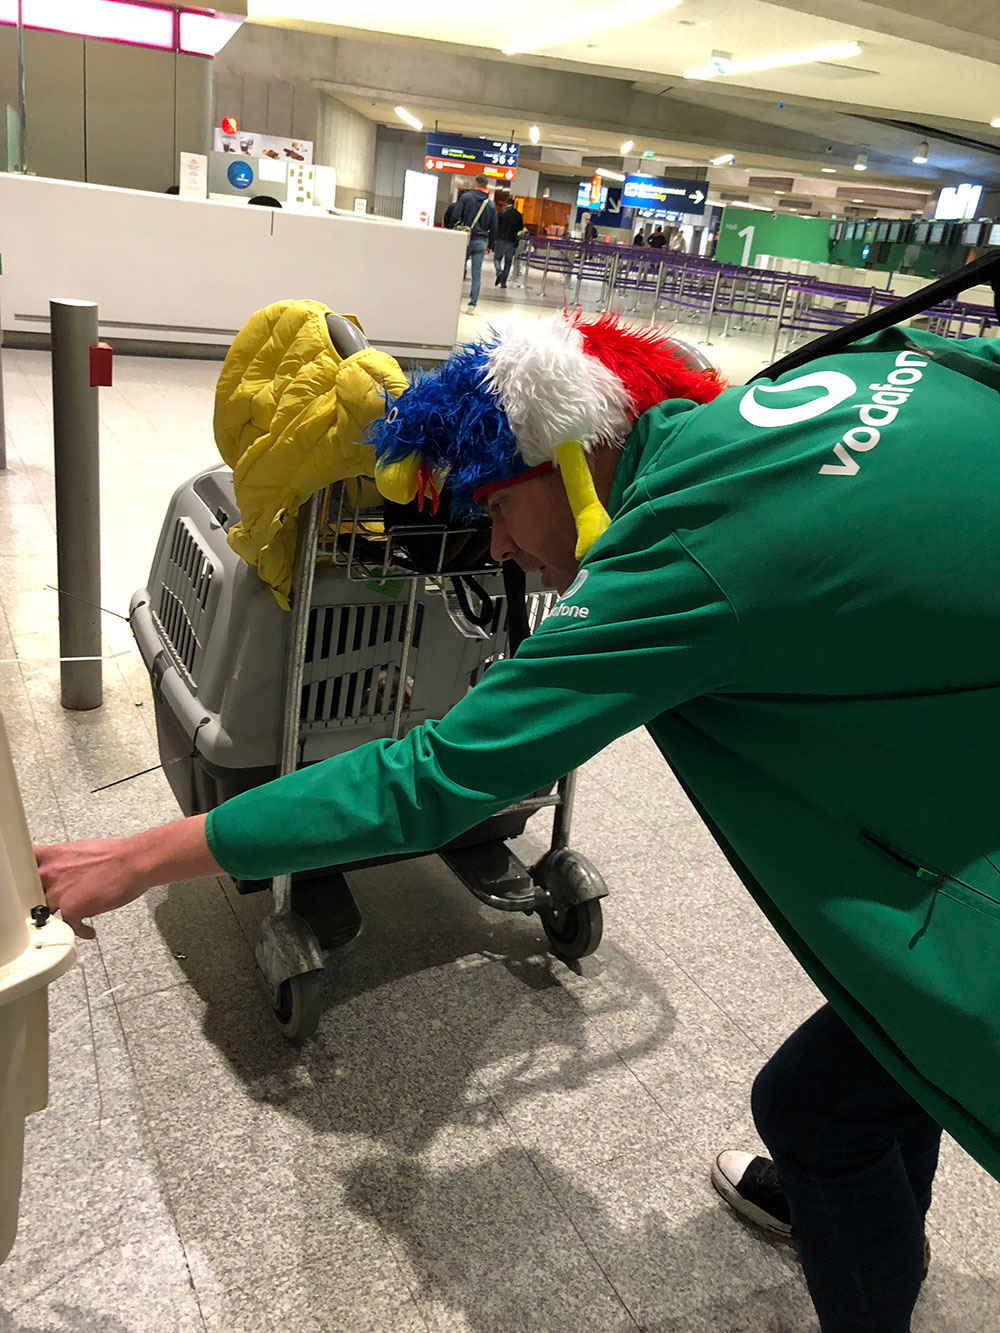 CDG was full of Irish sports fans travelling home after an international match in Paris. This friendly chap, sporting a fine piece of headwear, spent some time chatting gently to the dogs. He was happy to hear they had forever homes to go to.